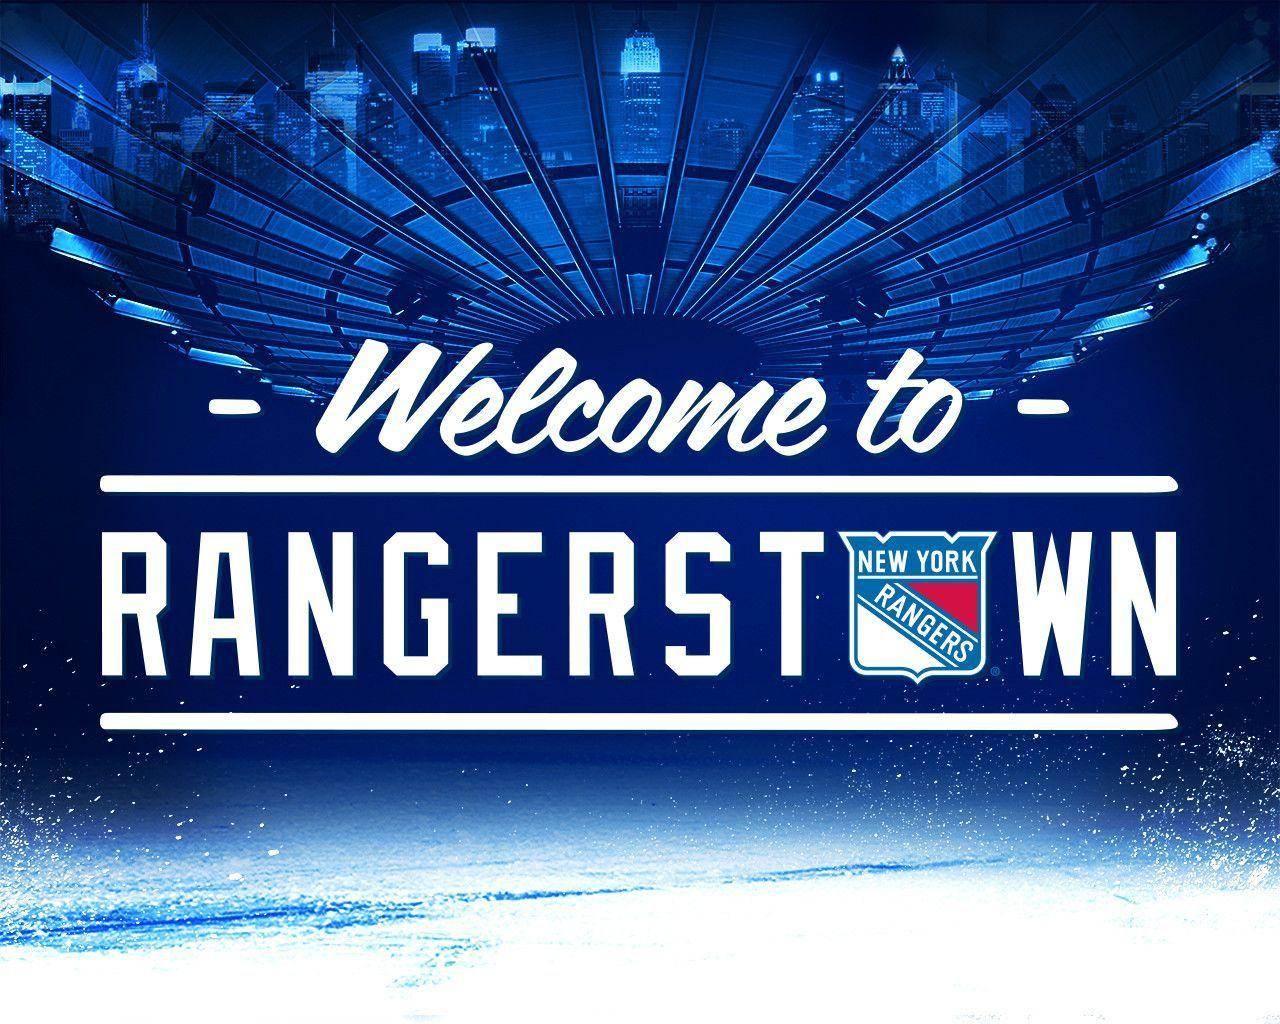 NewYork Rangers - Rangers Wallpaper - New York Rangers - Fan Zone